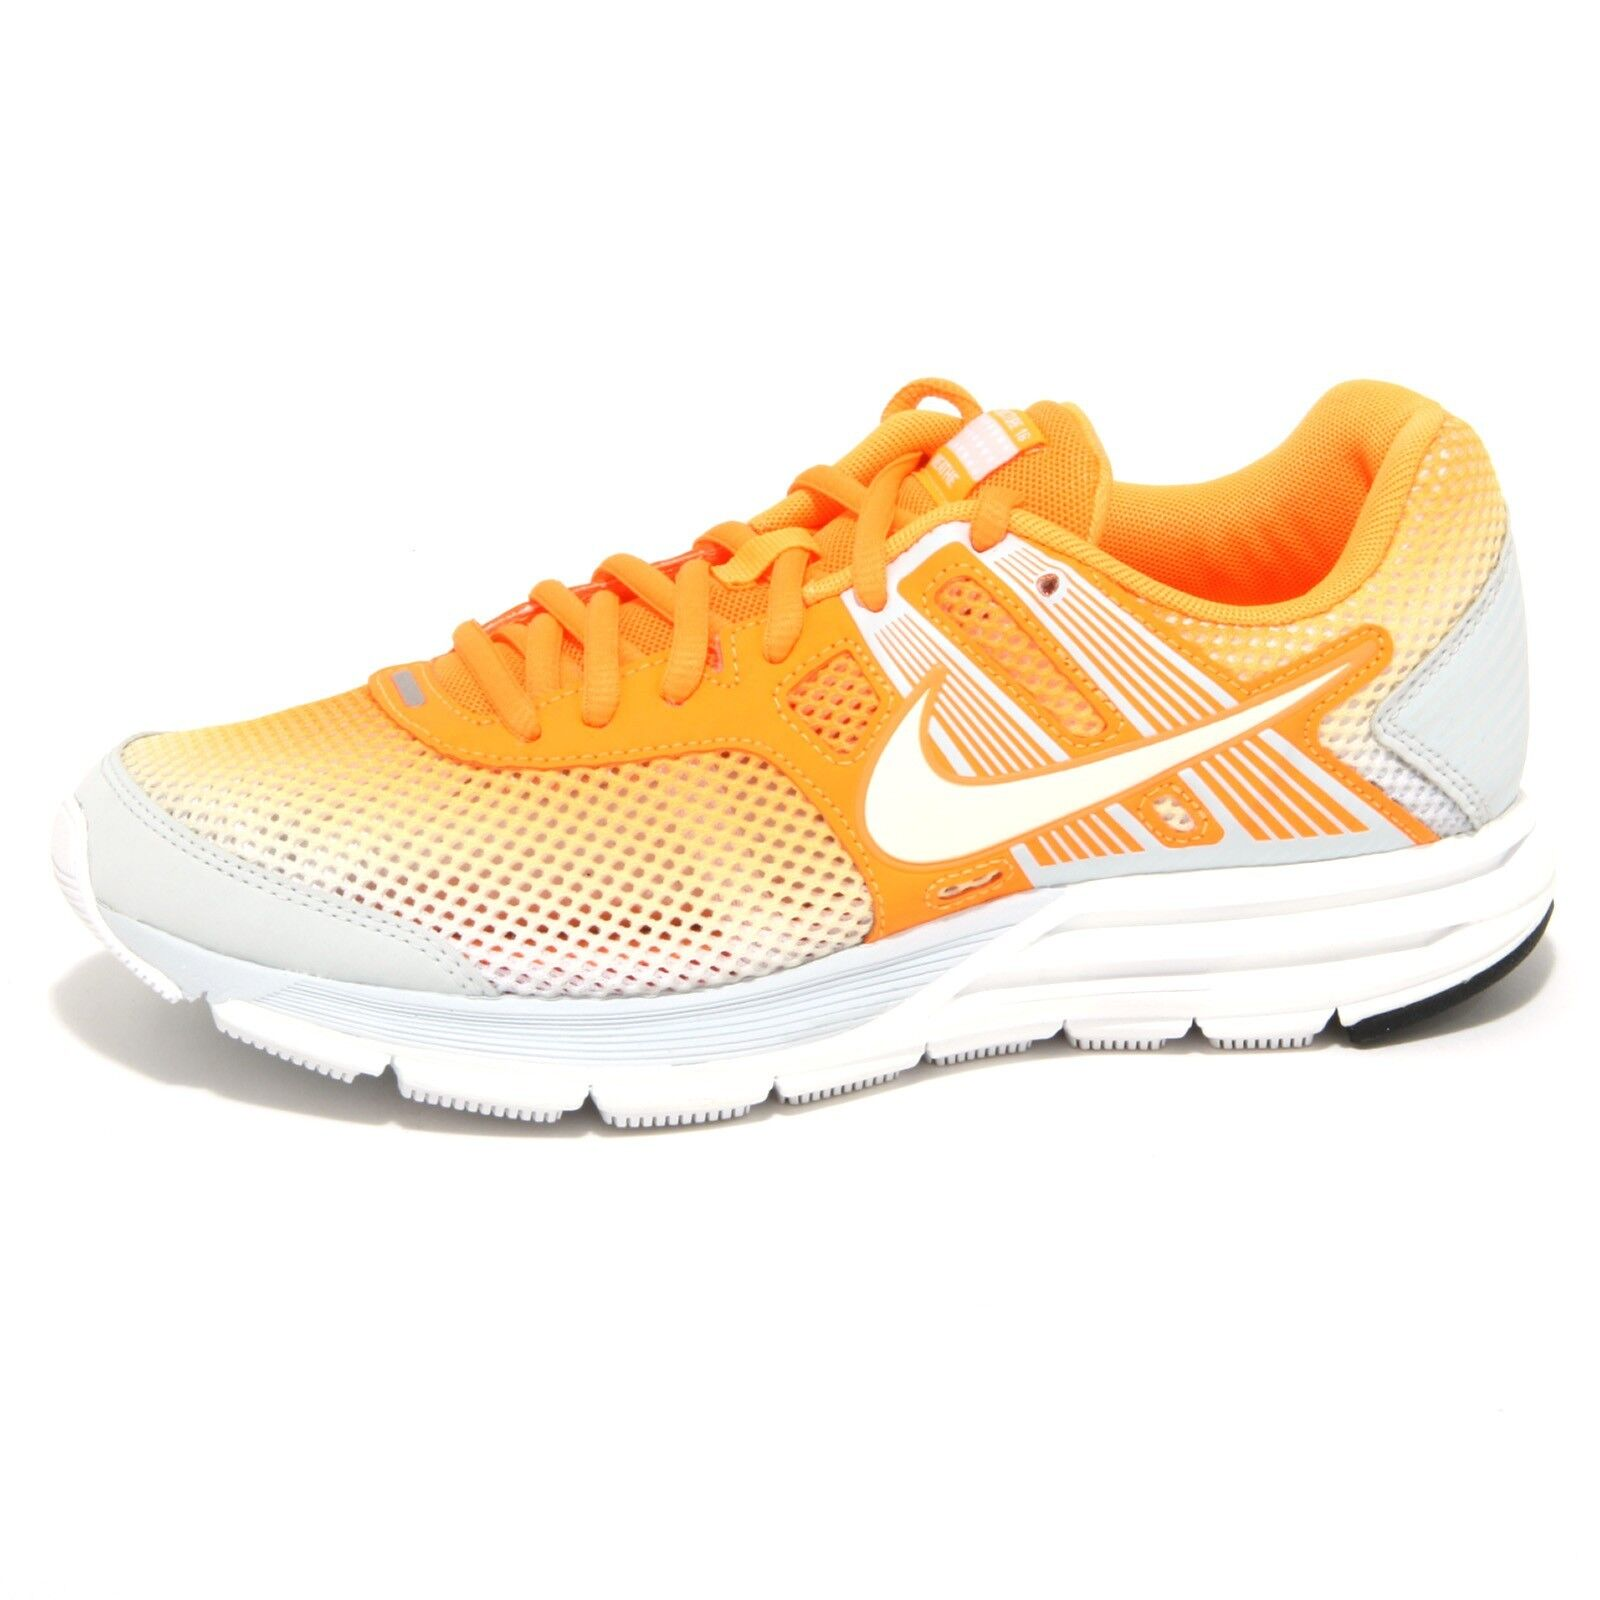 Breathe Structure Donna 1662o Sneakers Nike wfW1gZqI4